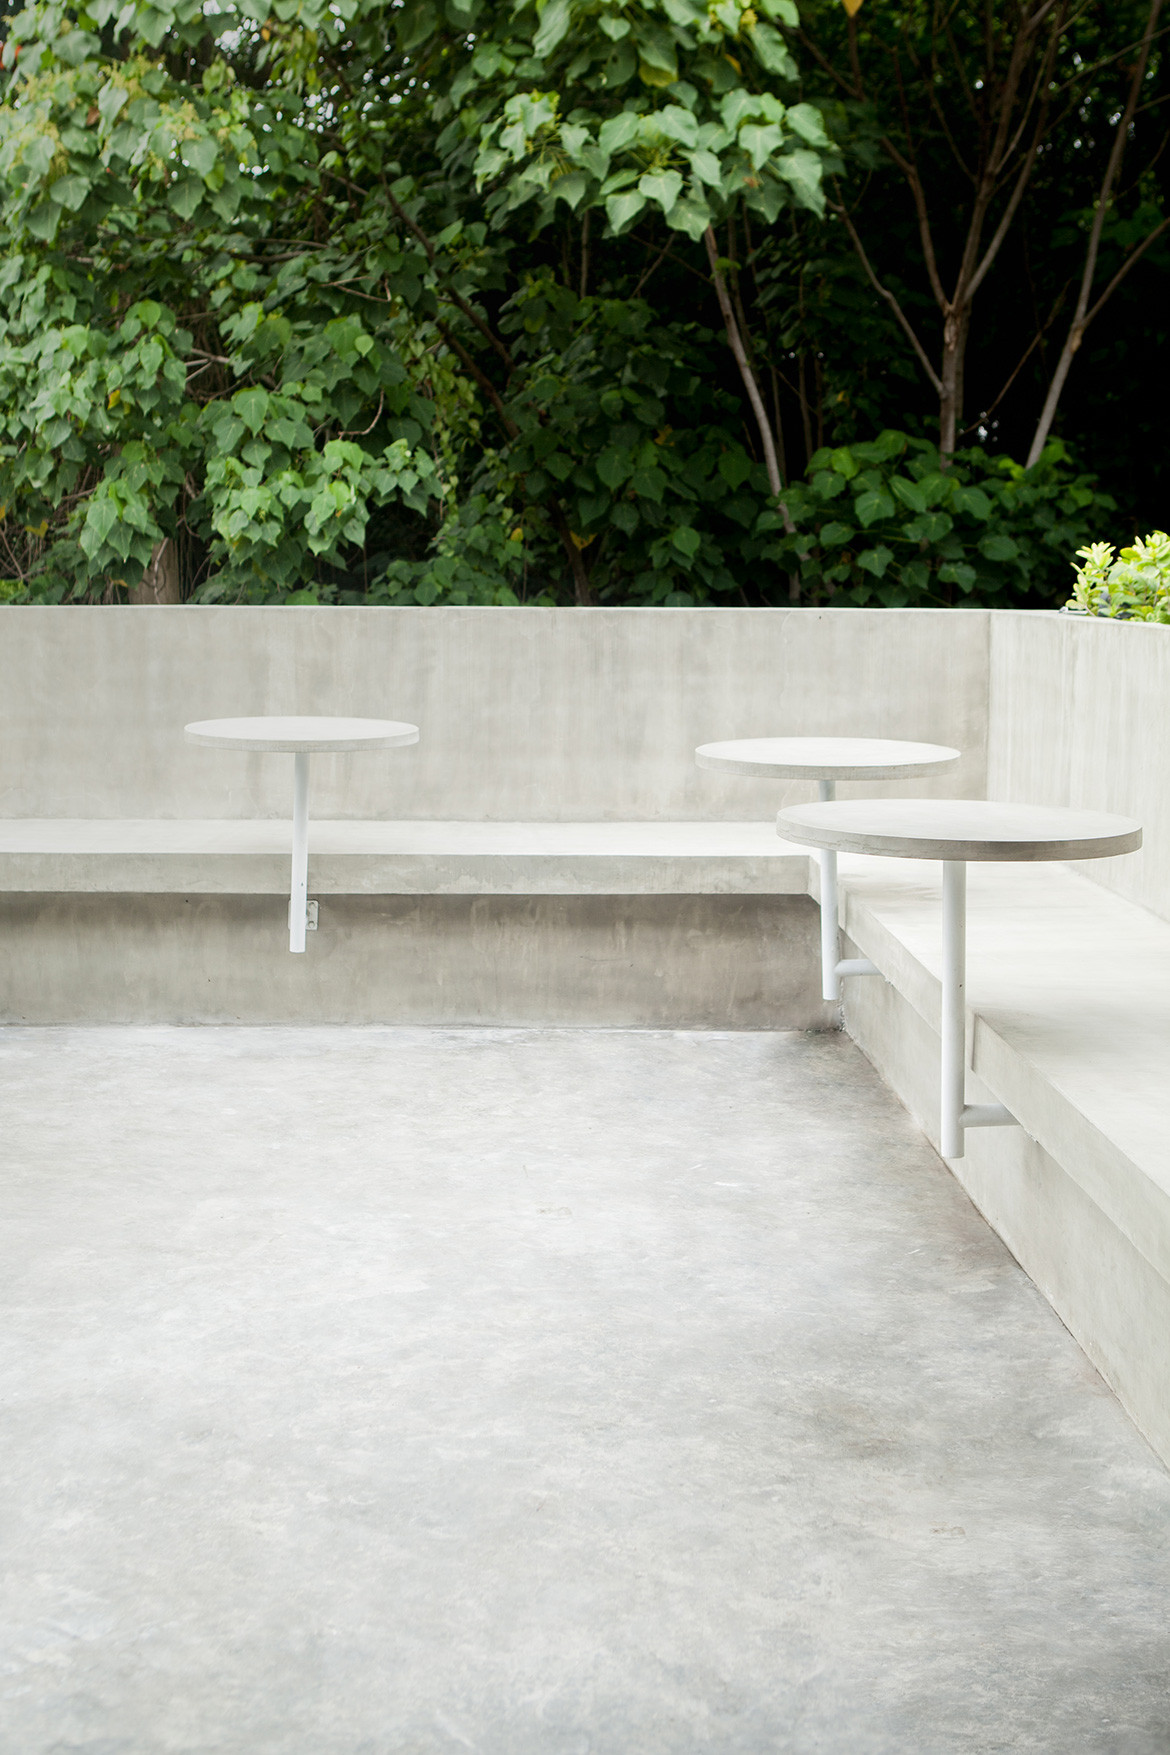 XO Full Circle Bali CC Sheila Man outdoor seating concrete bench